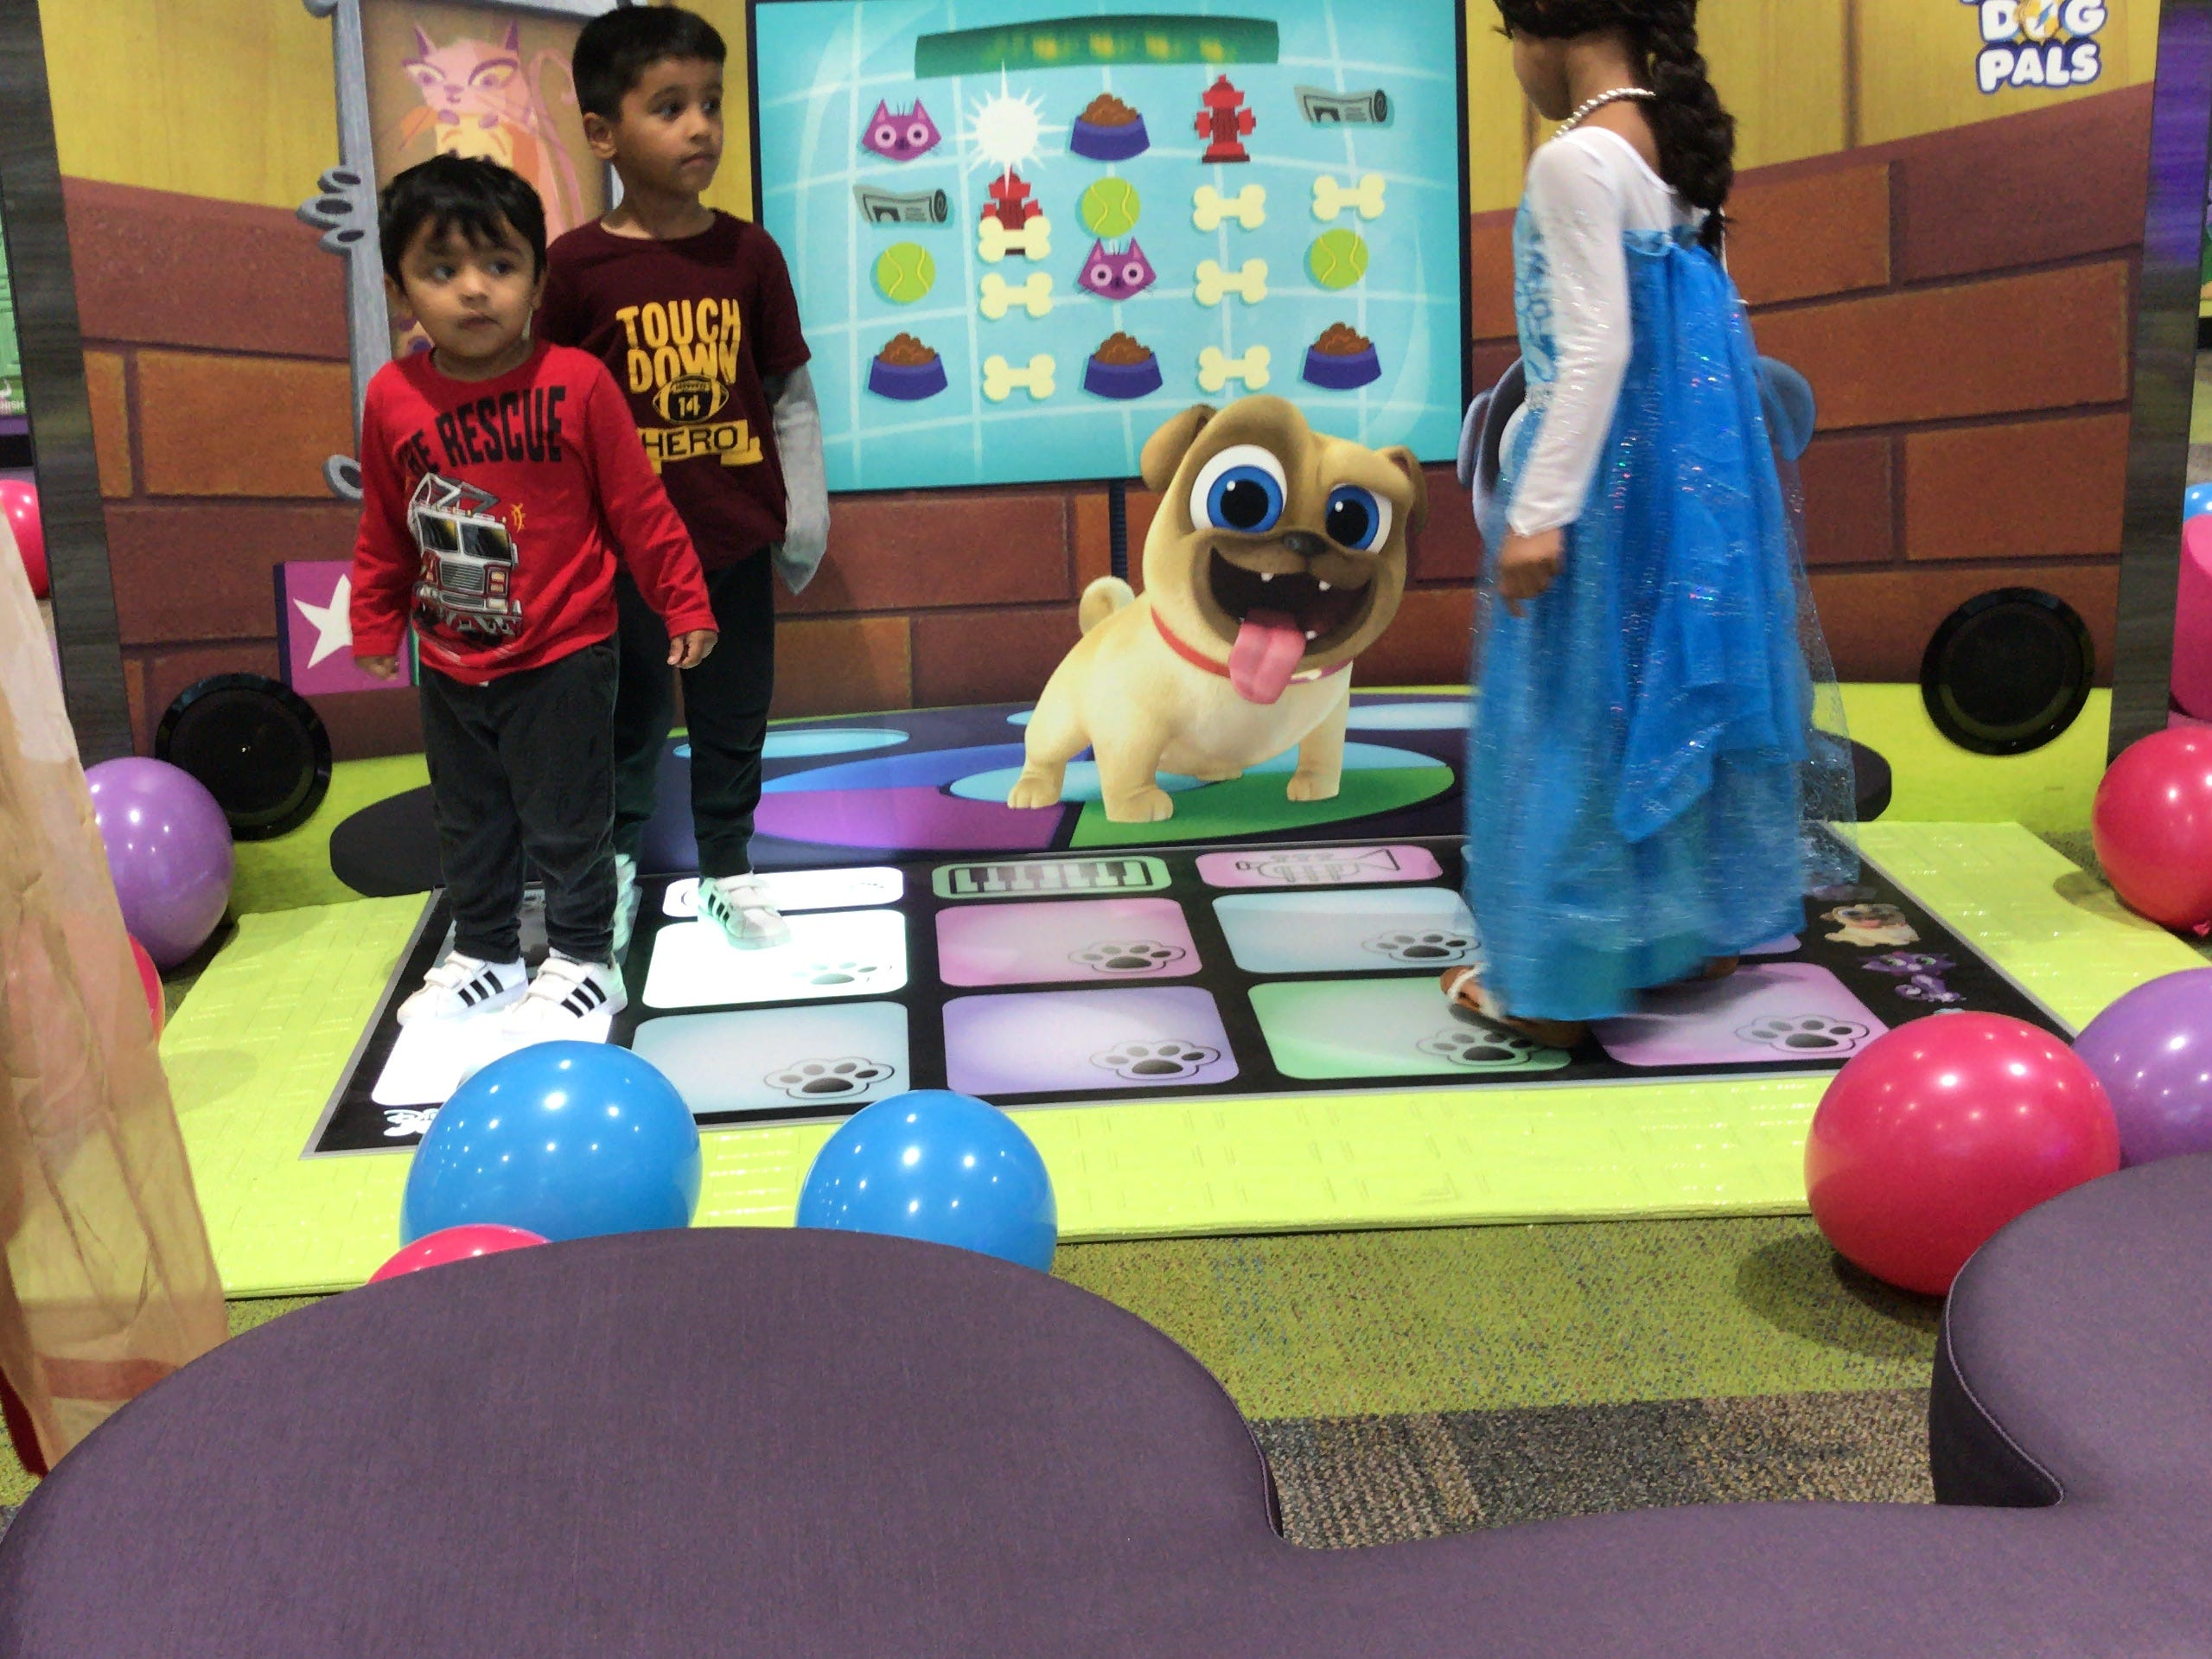 Scenes from the Sept. 21 opening of Disney Junior Play Zone at Menlo Park Mall in Edison.